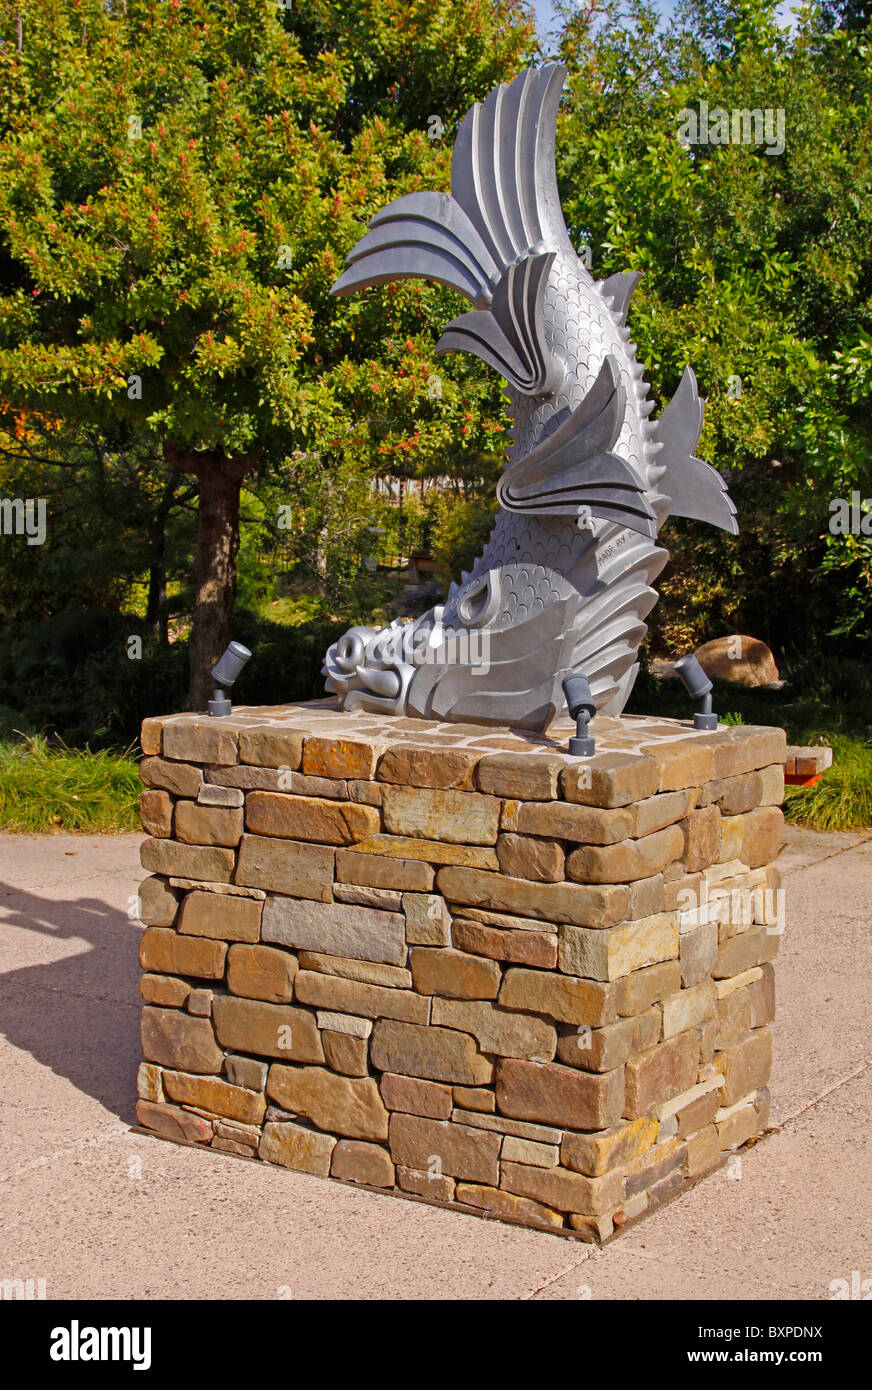 Statue of the Shachi mythical ferocious fish of Japan located in the ...